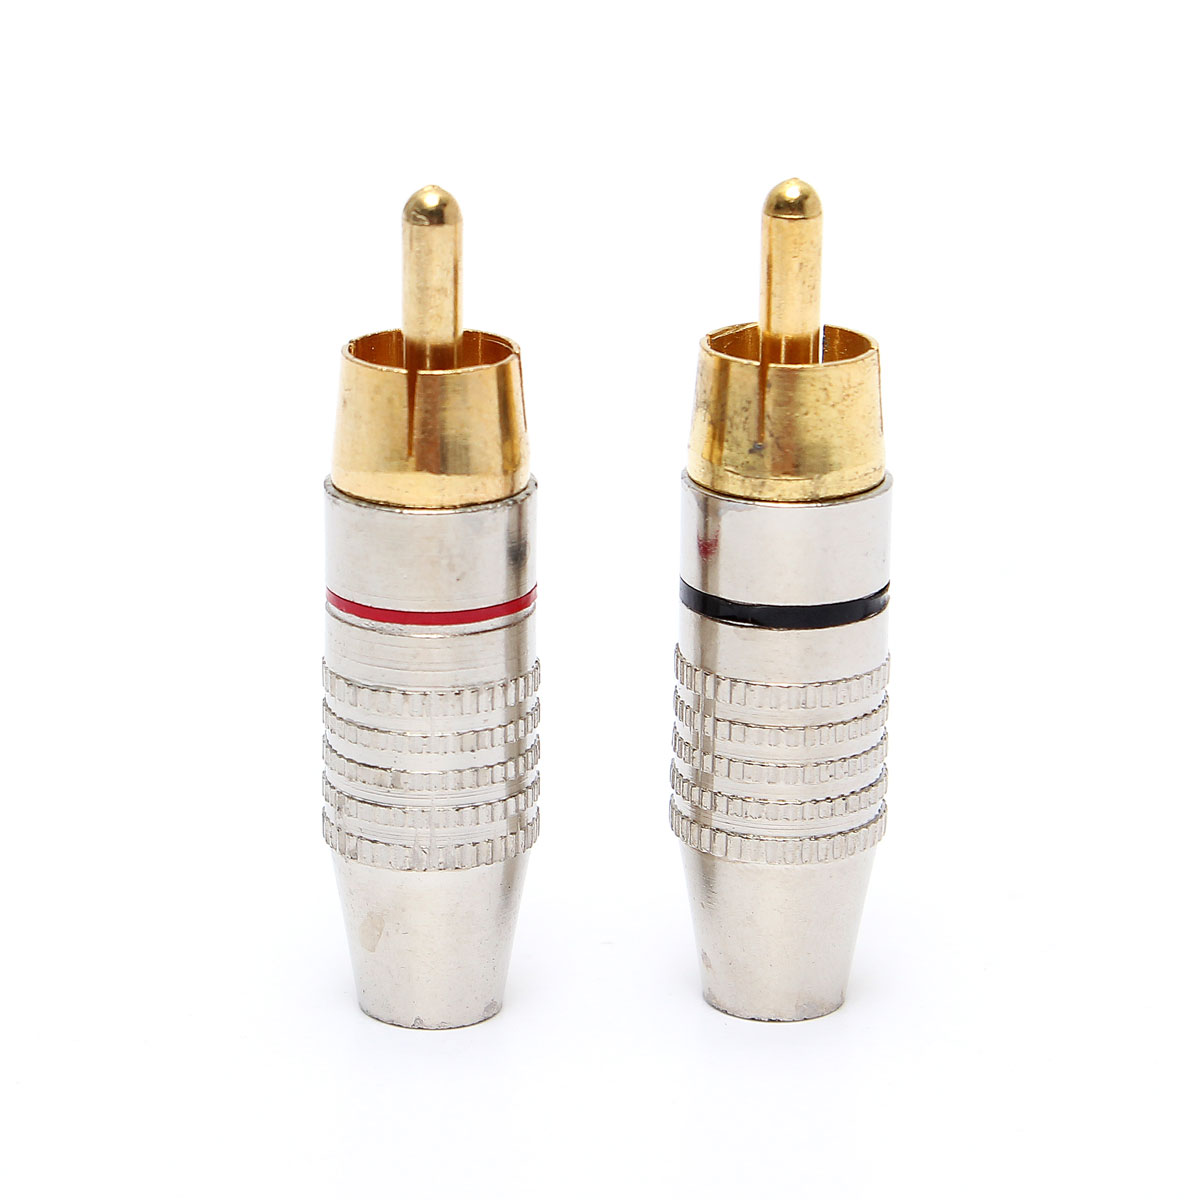 Balck + Red 2x Gold RCA Plug Solder Audio Video Adapter Connector Male to Male Convertor 2pcs hi end rca male plug adapter audio phono gold plated solder connector wv hfr 2in1 lcc77